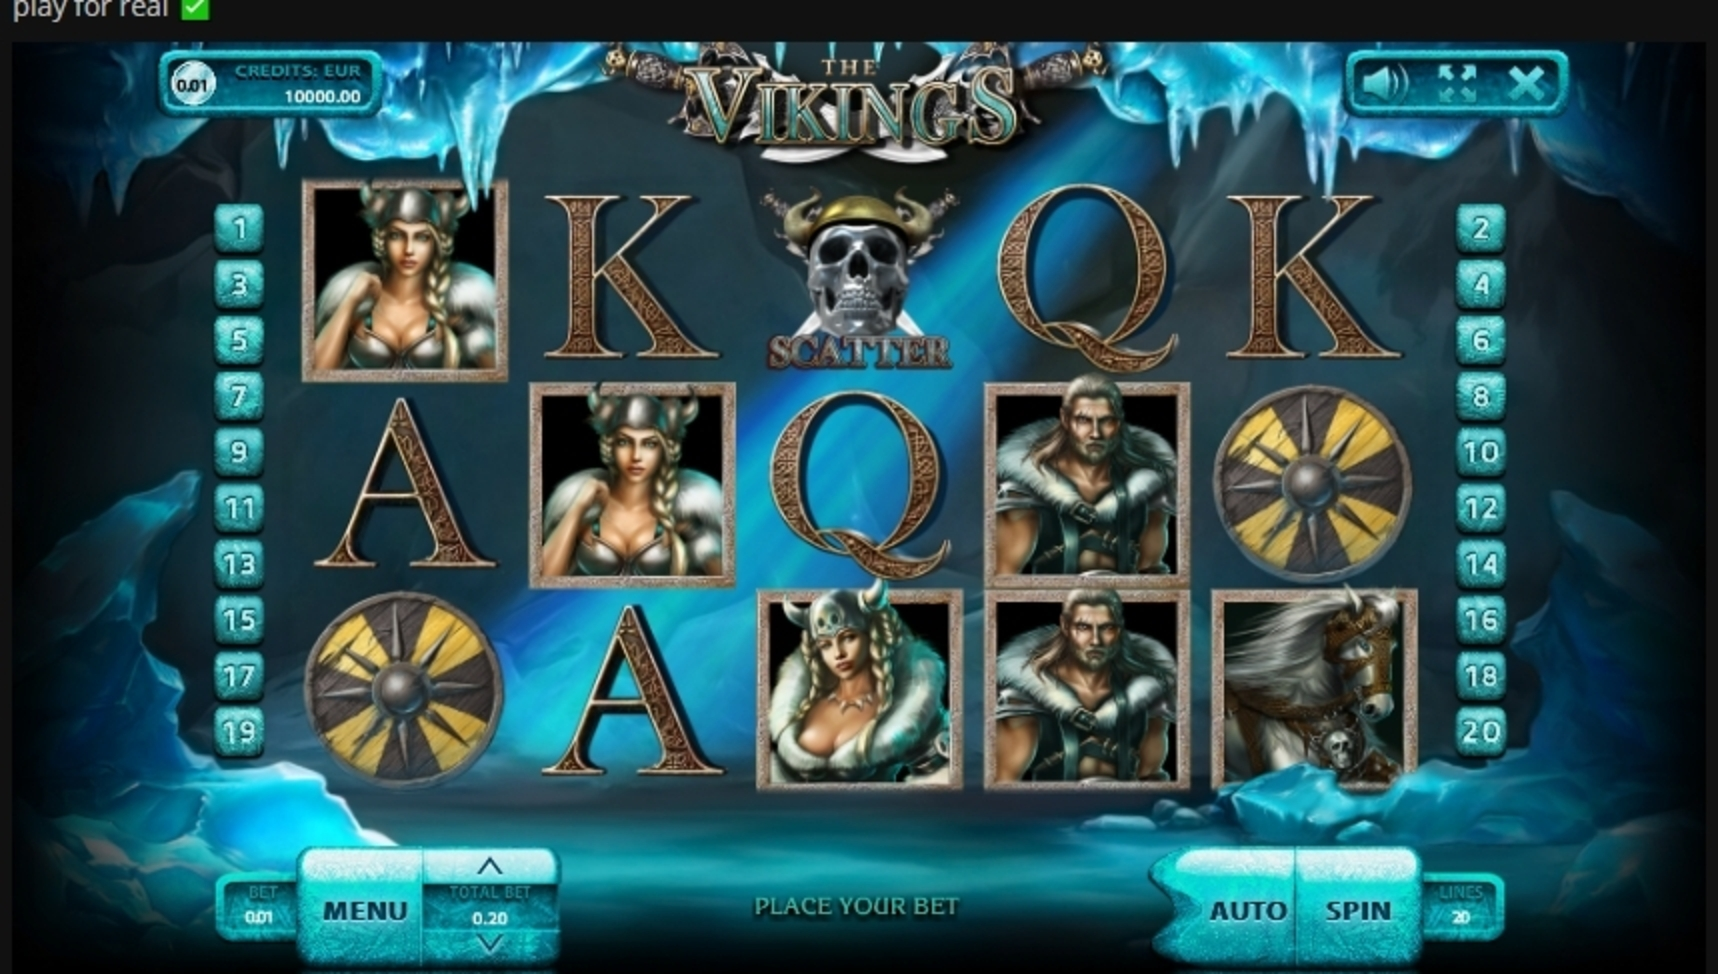 Reels in The Vikings (Endorphina) Slot Game by Endorphina